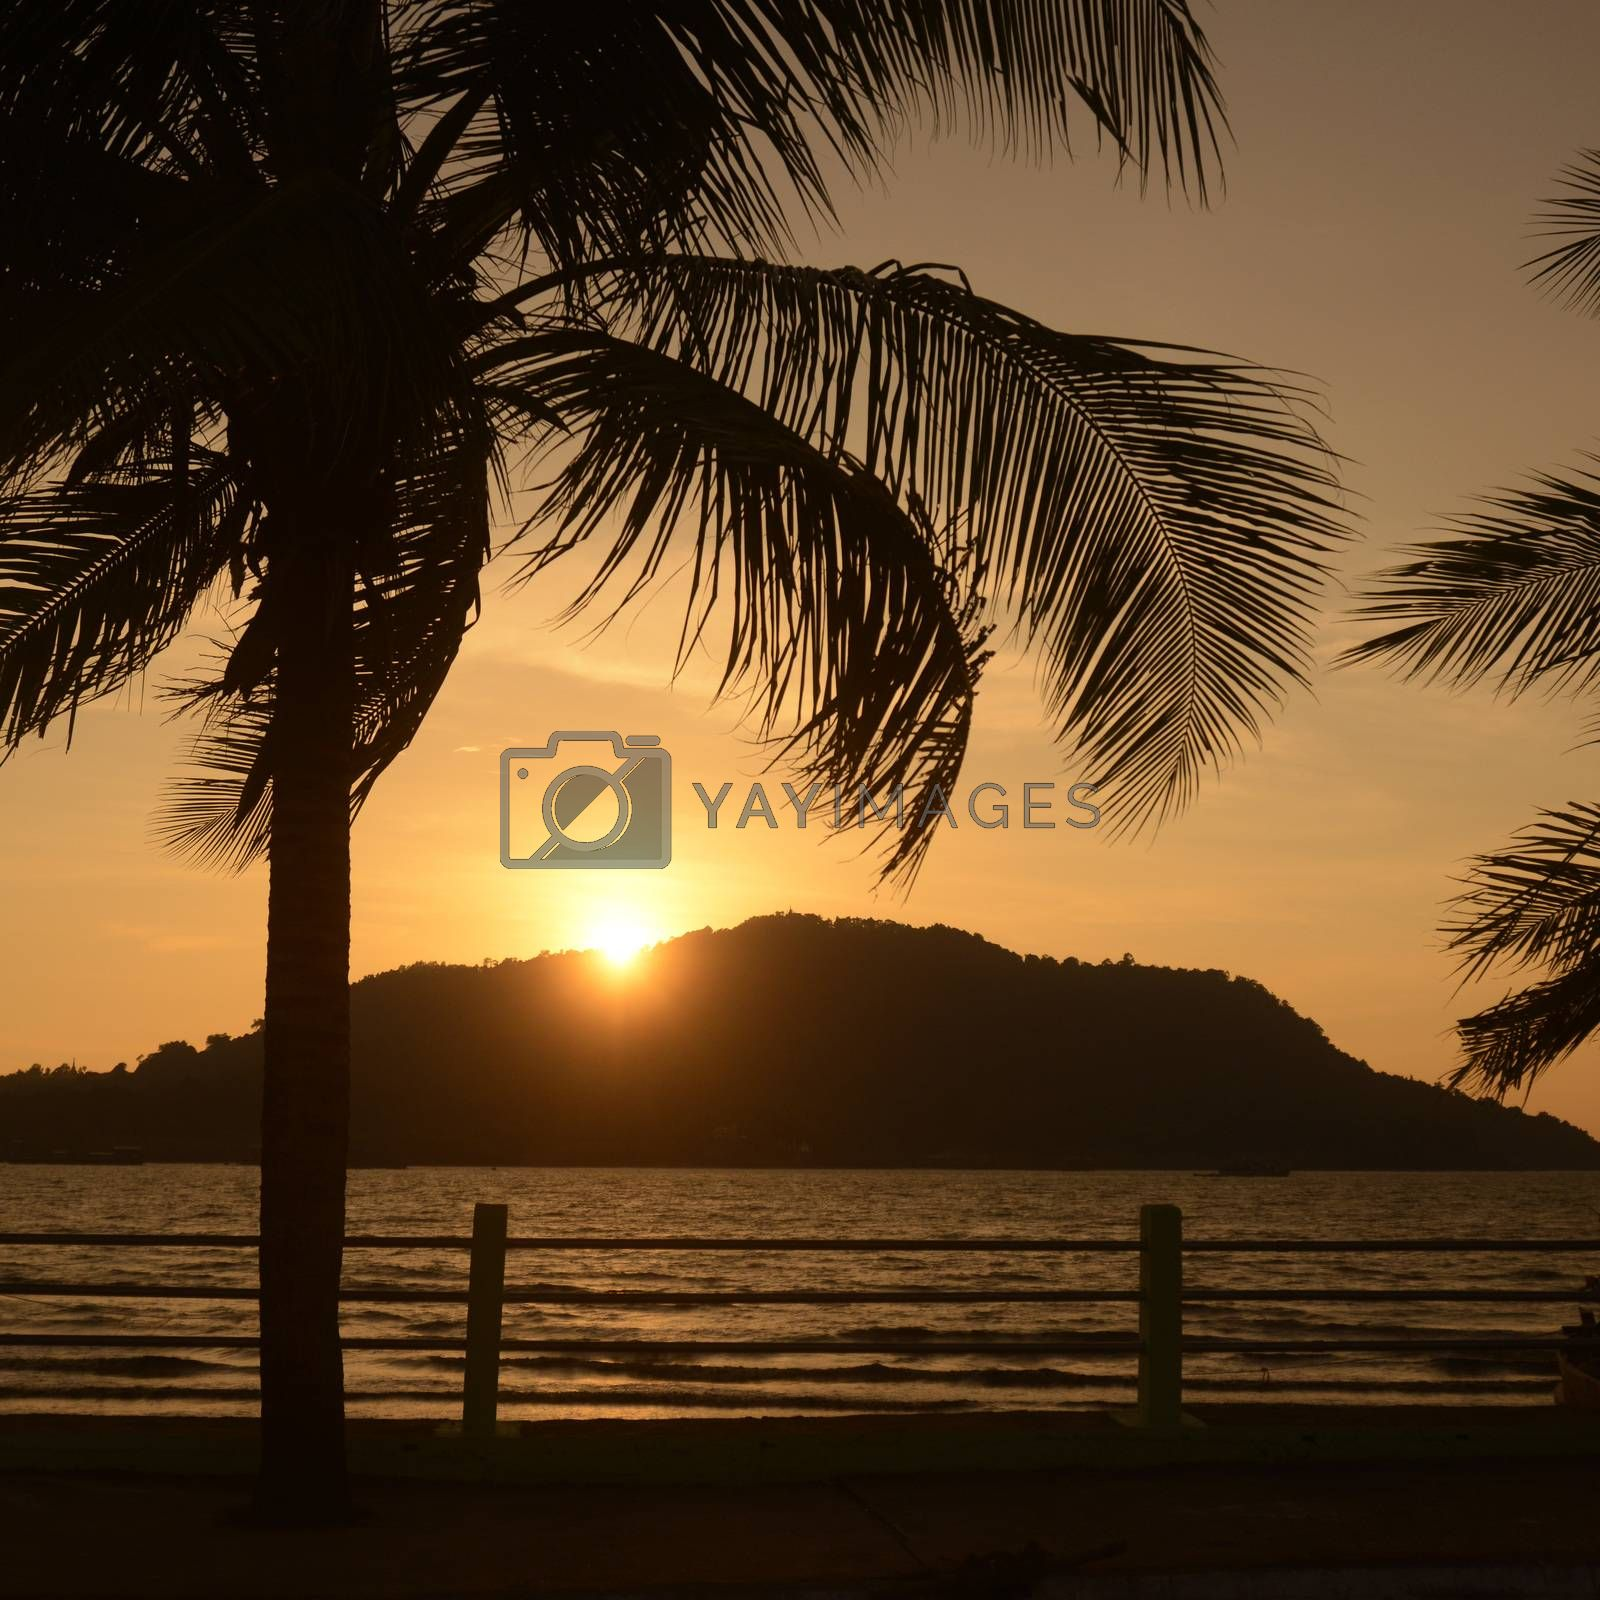 the sunset at the Stand road at the coast of the Andaman sea of Myeik in the south in Myanmar in Southeastasia.